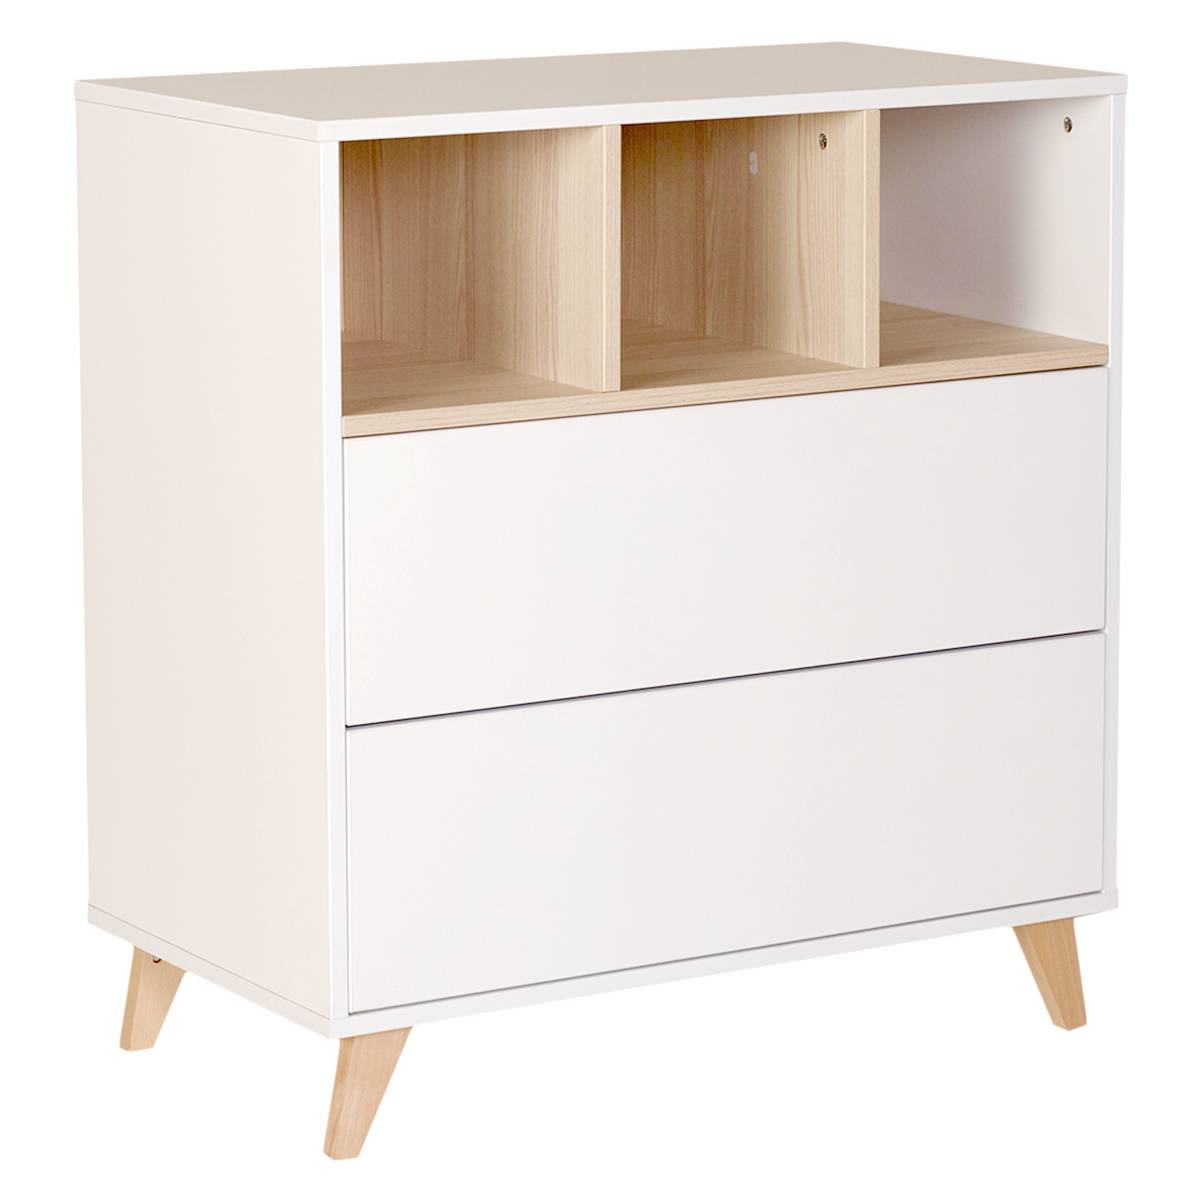 Quax Commode Loft - White